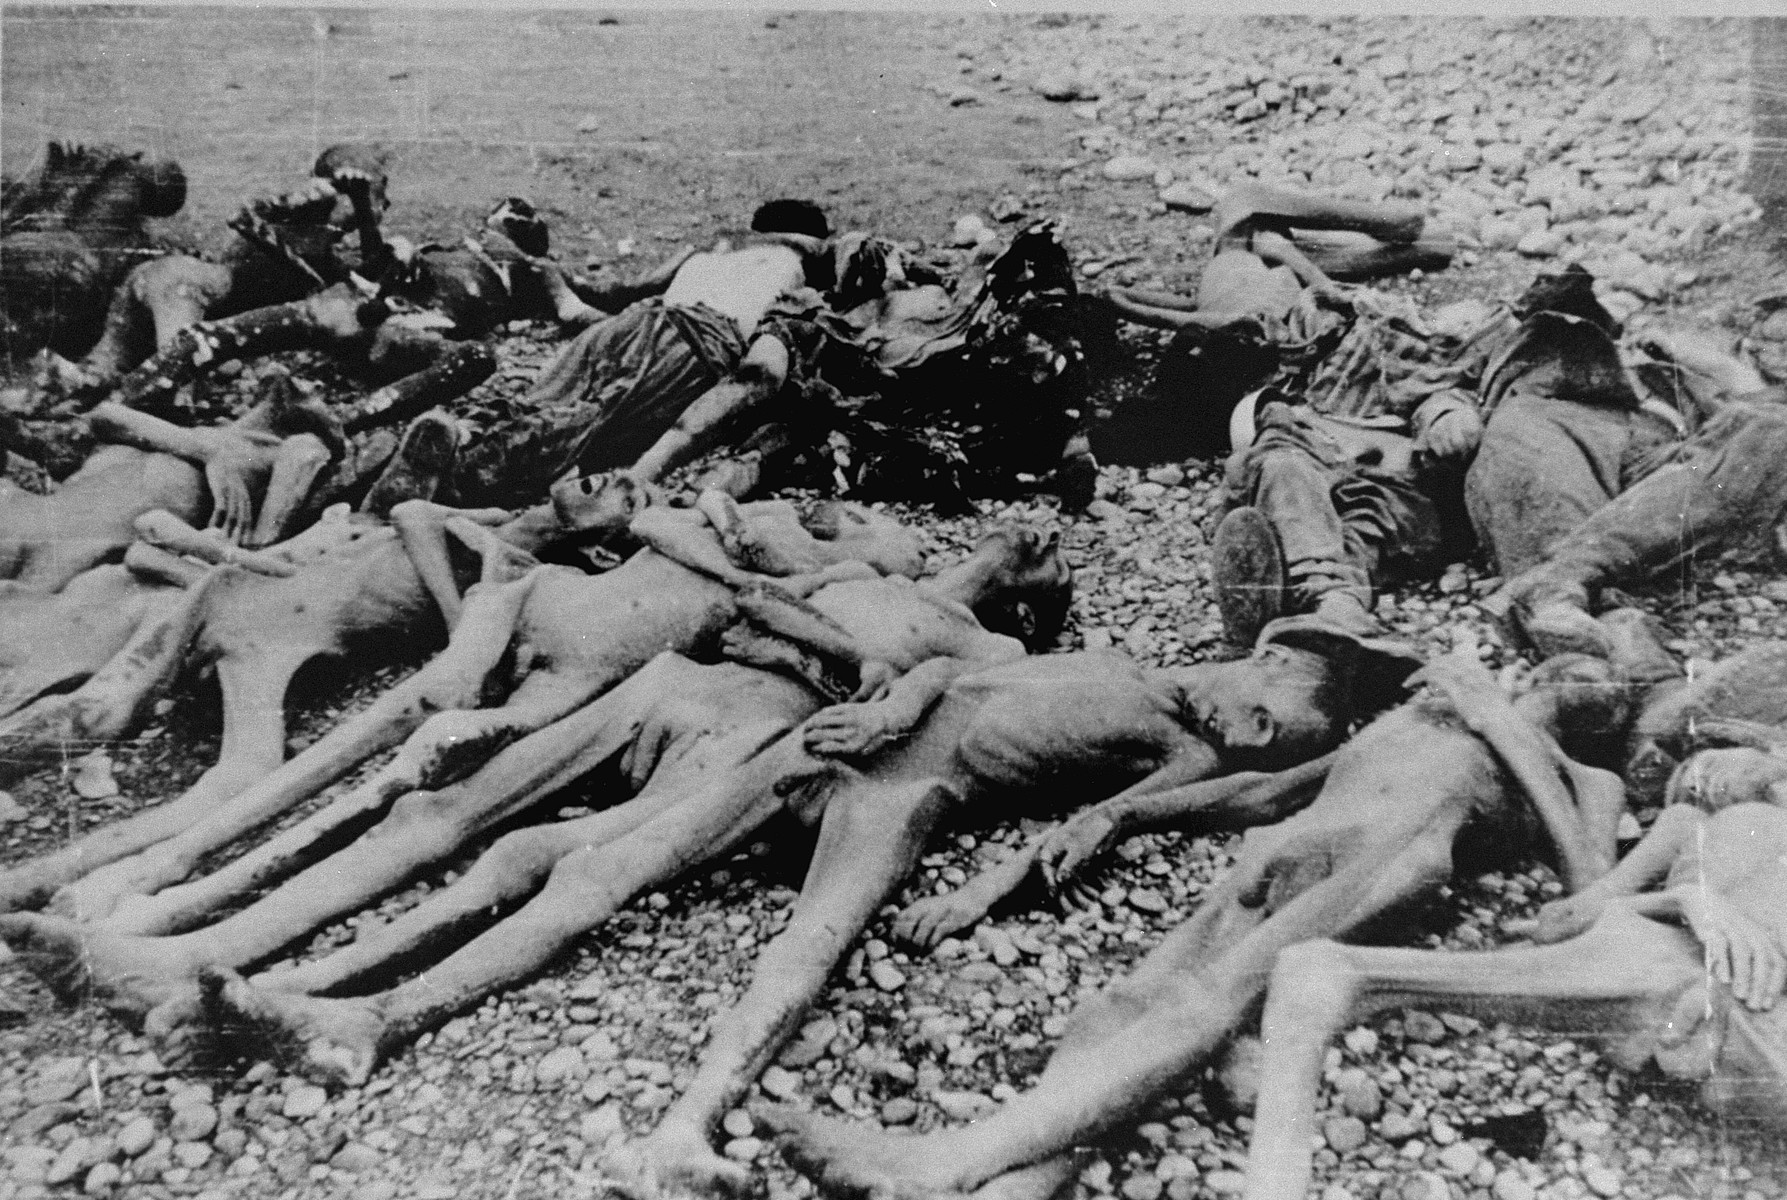 Corpses awaiting burial in Leipzig-Thekla, a sub-camp of Buchenwald.